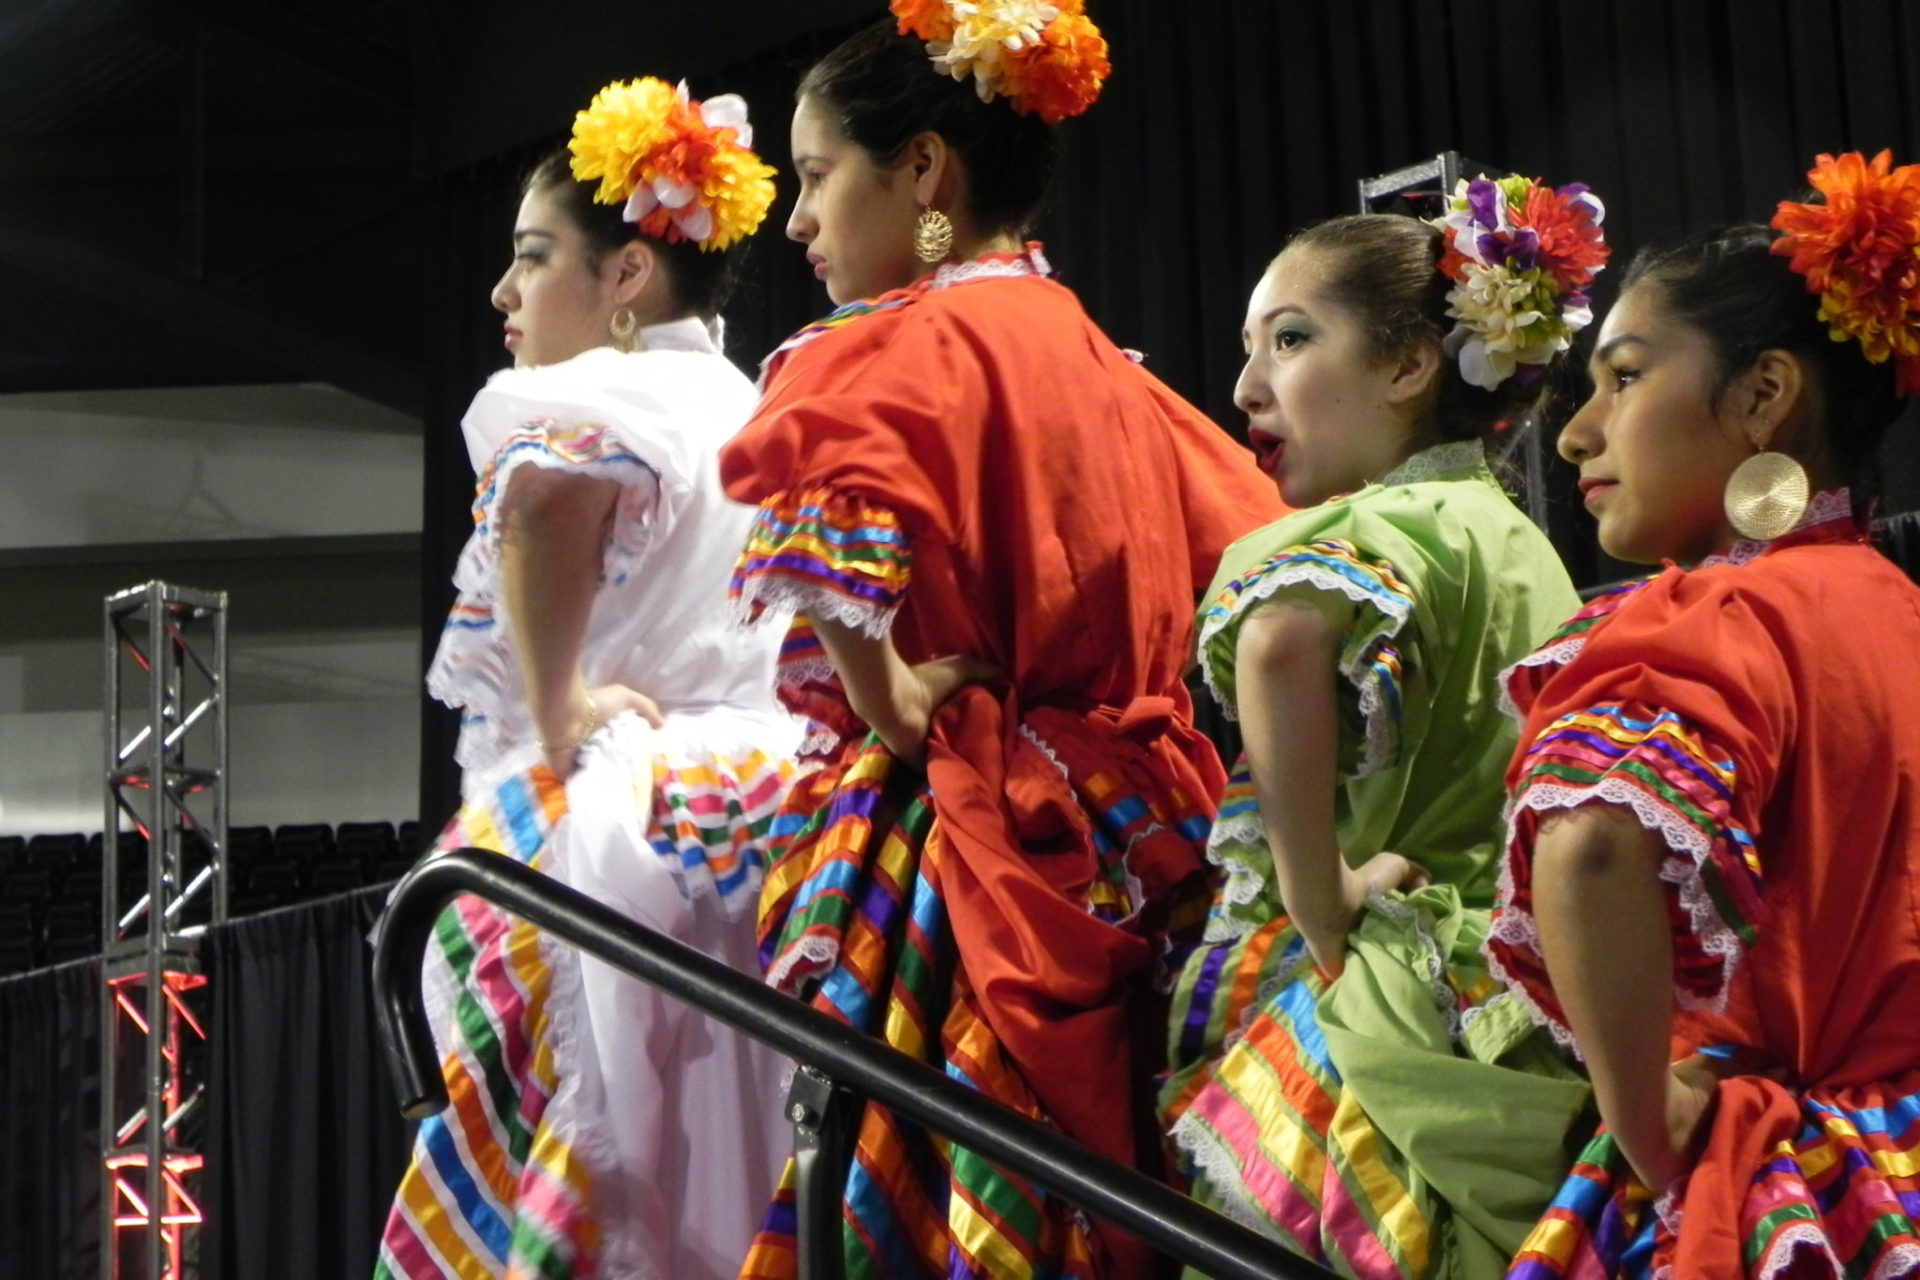 Things to do in Kent: Celebrate diversity in Kent, Washington at this year's Kent International Festival, scheduled for June 4, at ShoWare.